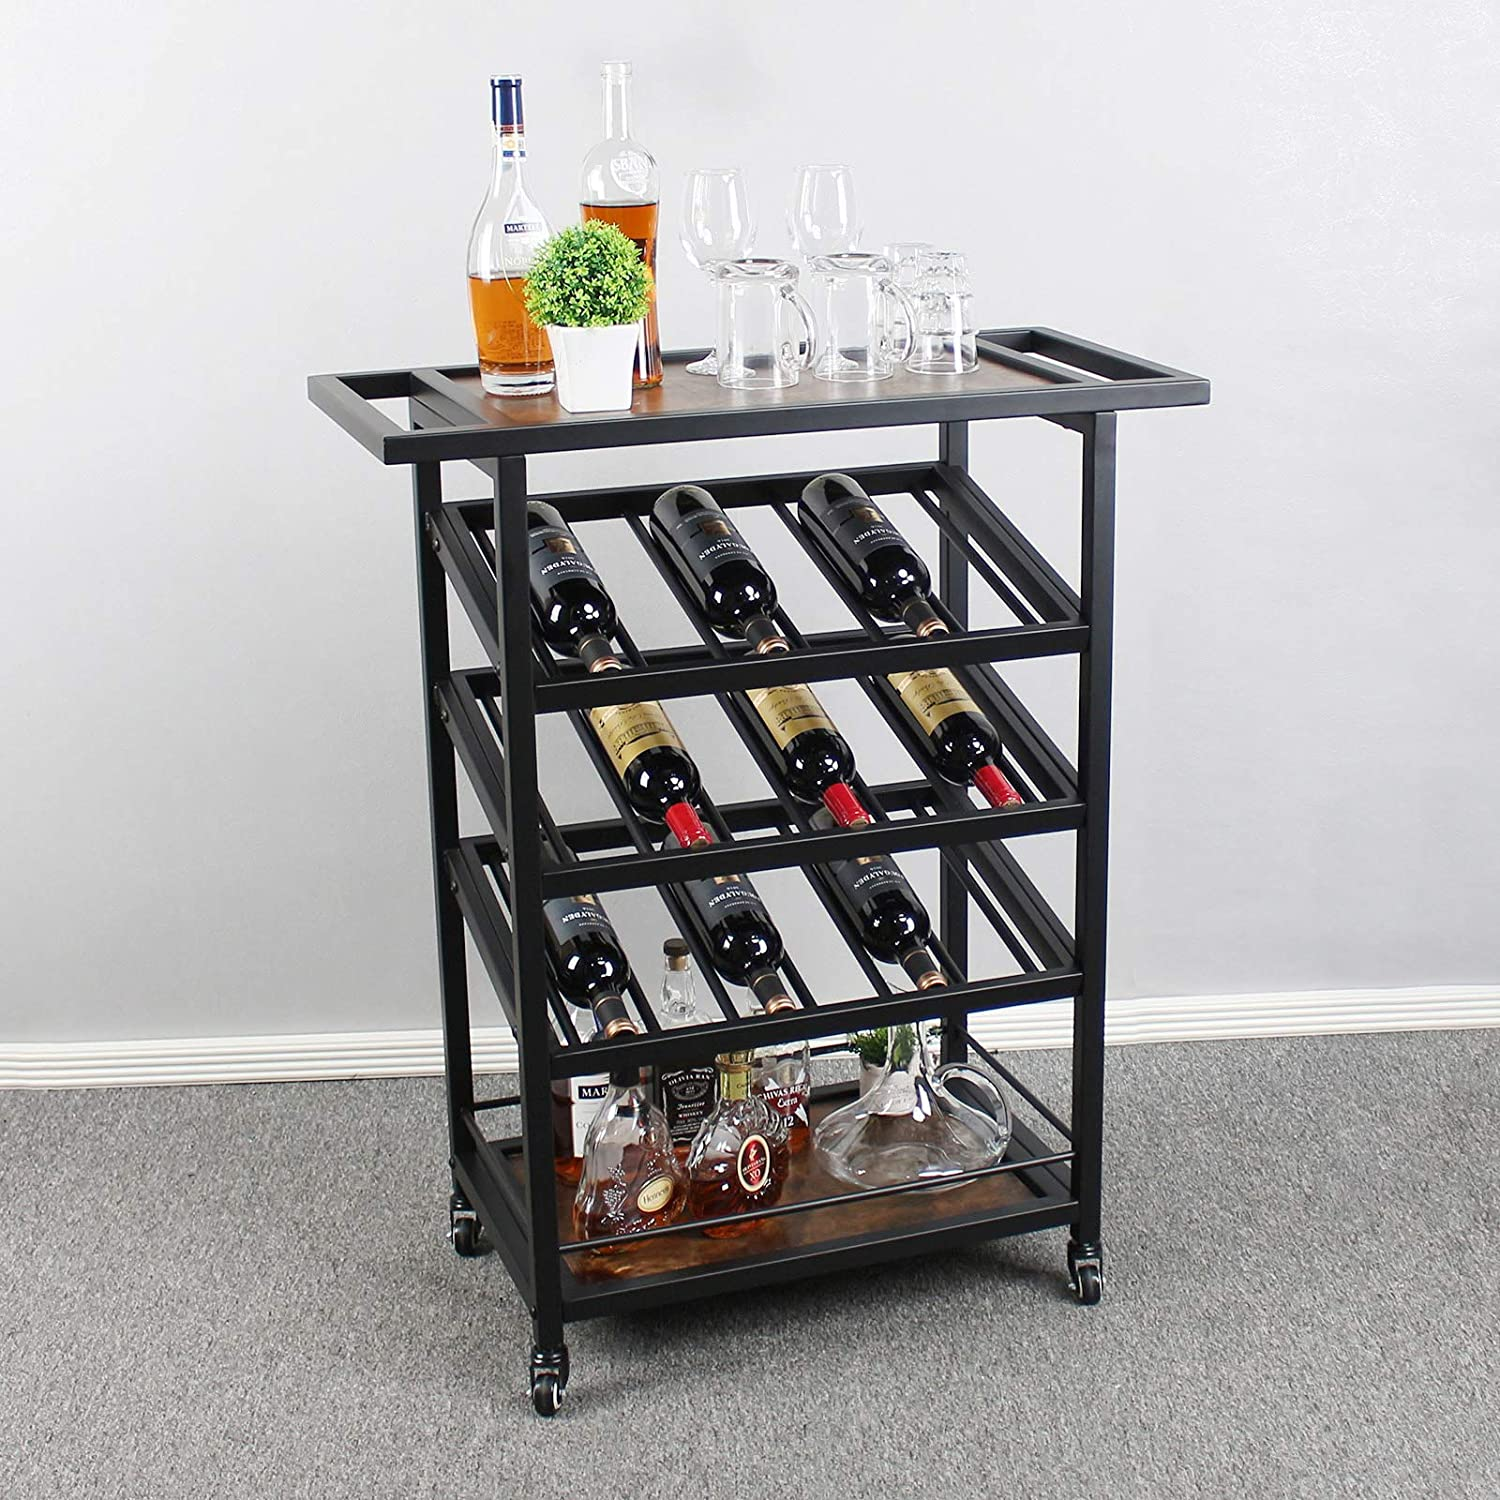 Wine Rack Free Standing Wine Holder Display Shelves with Wheels for The Home,Wine Bar Cabinet with Storage, Brown